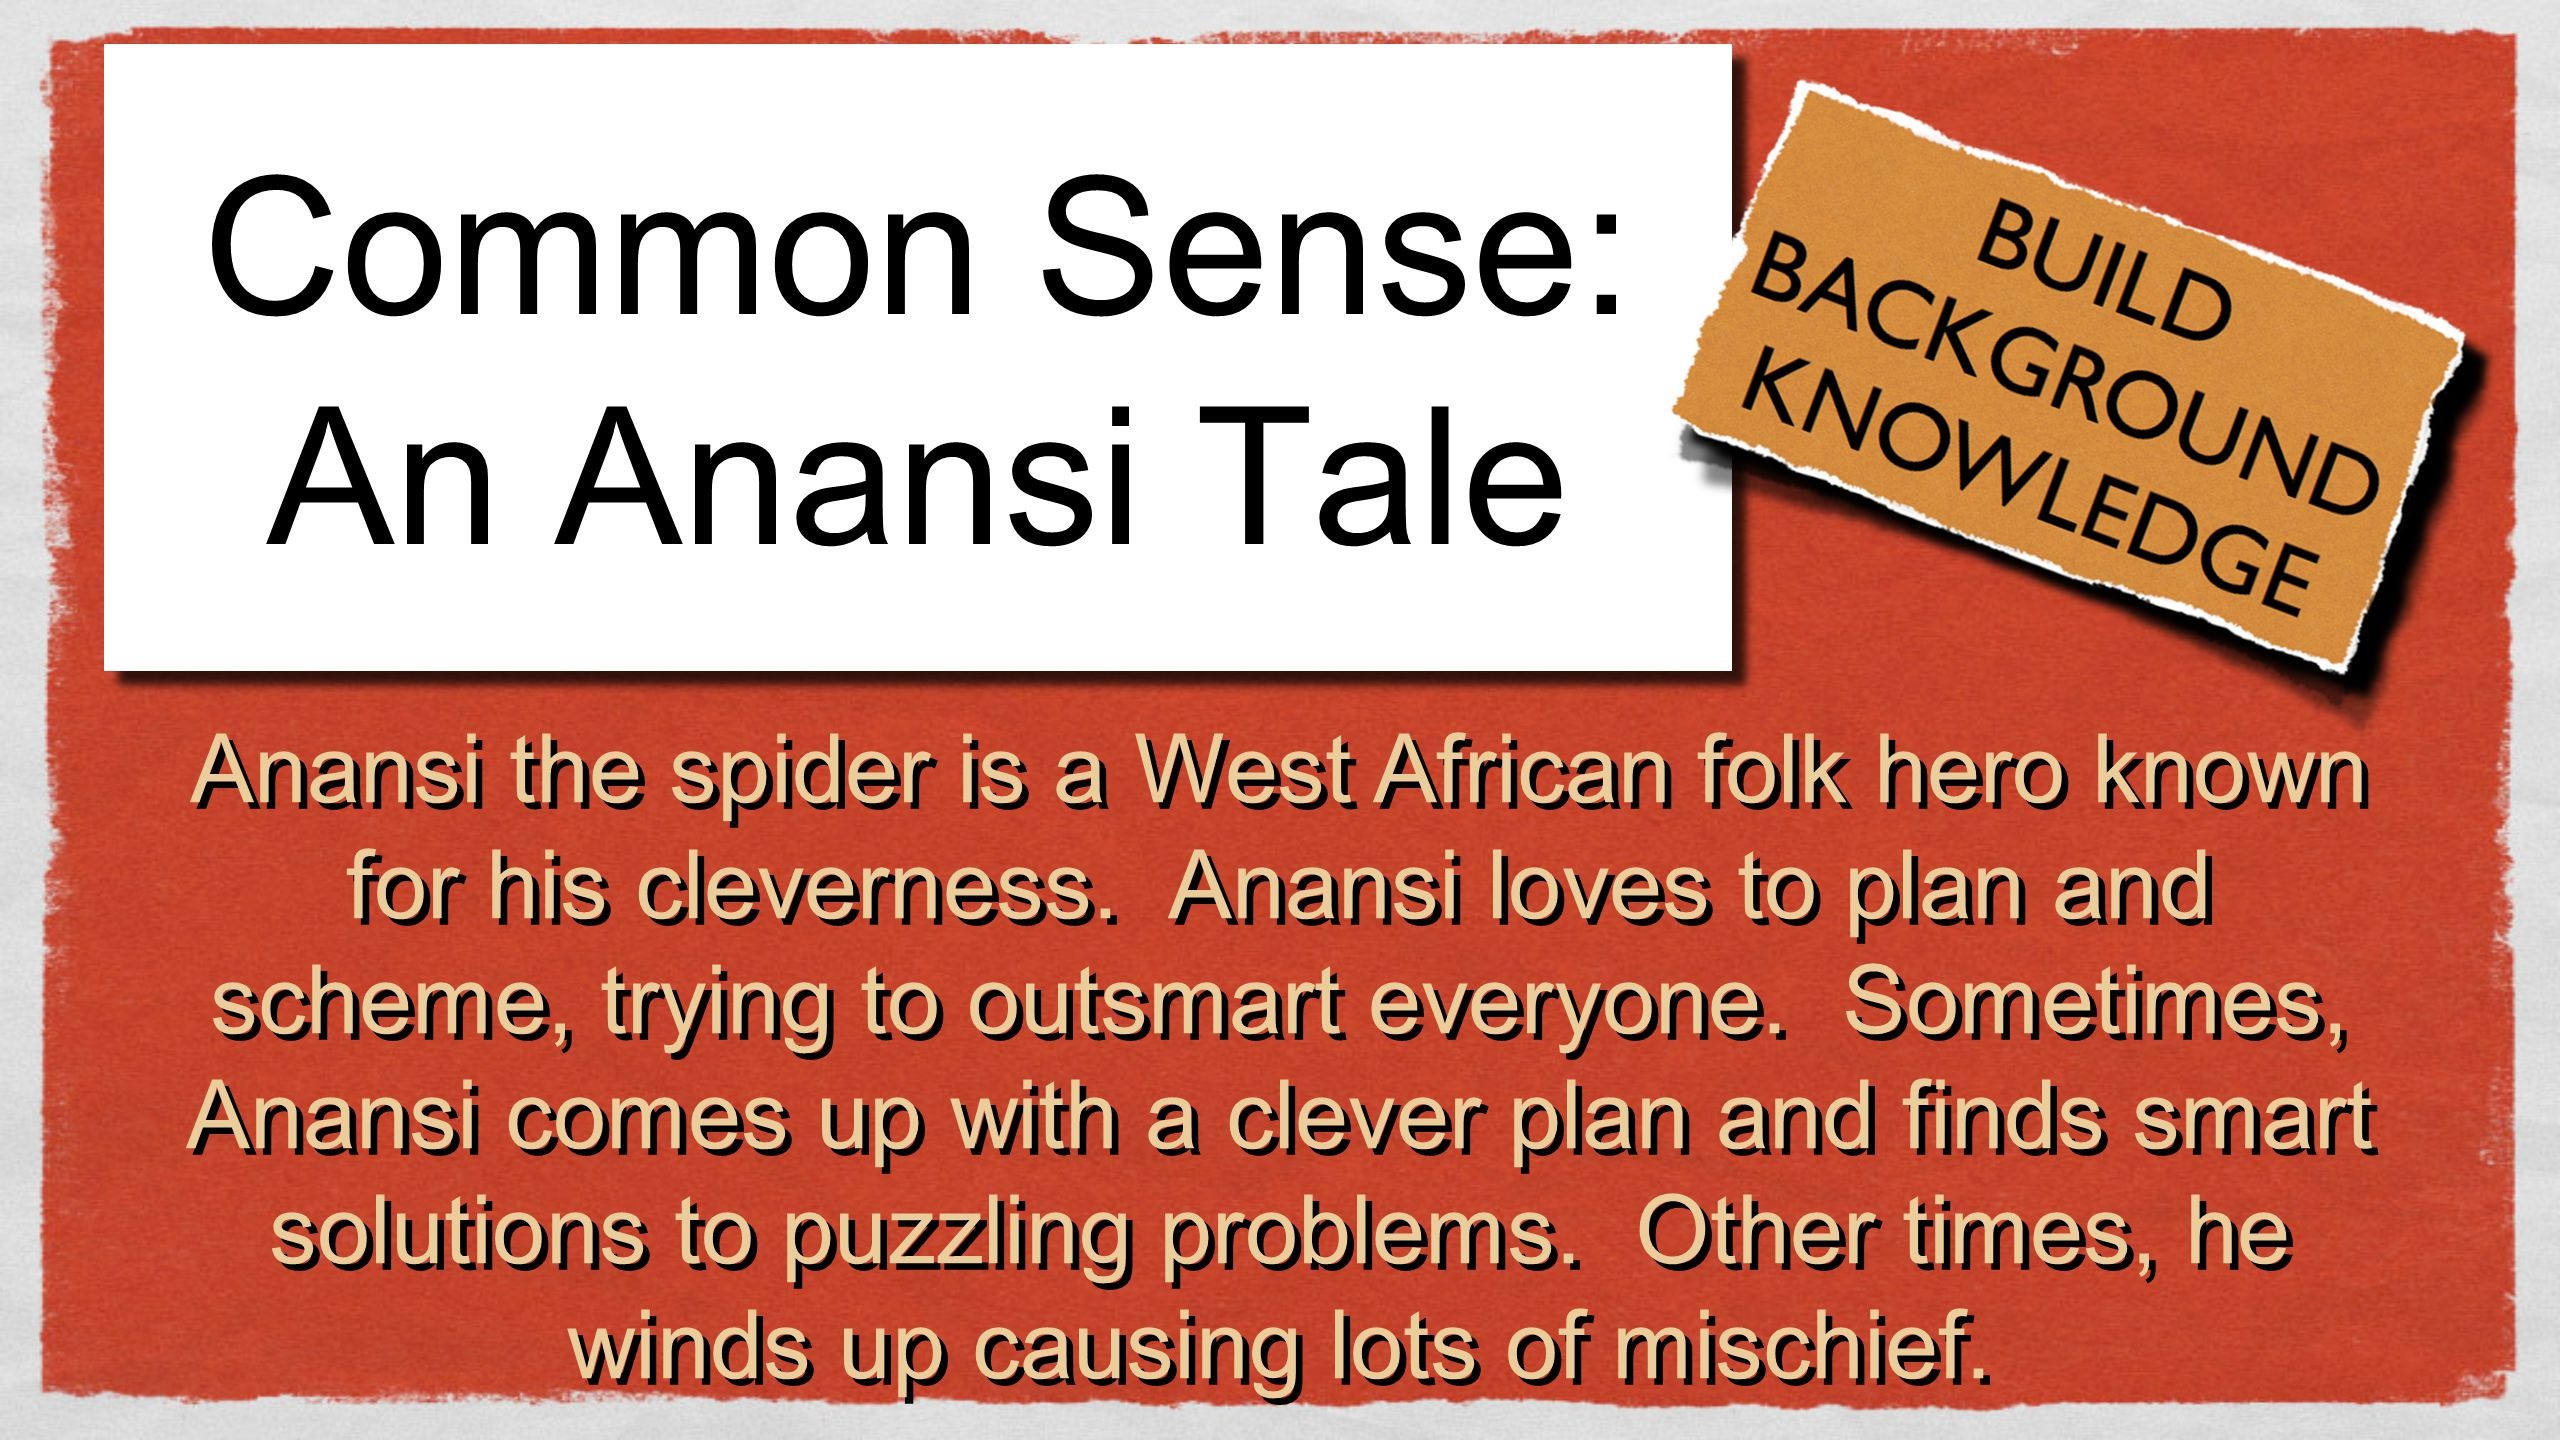 Common Sense: An Anansi Tale